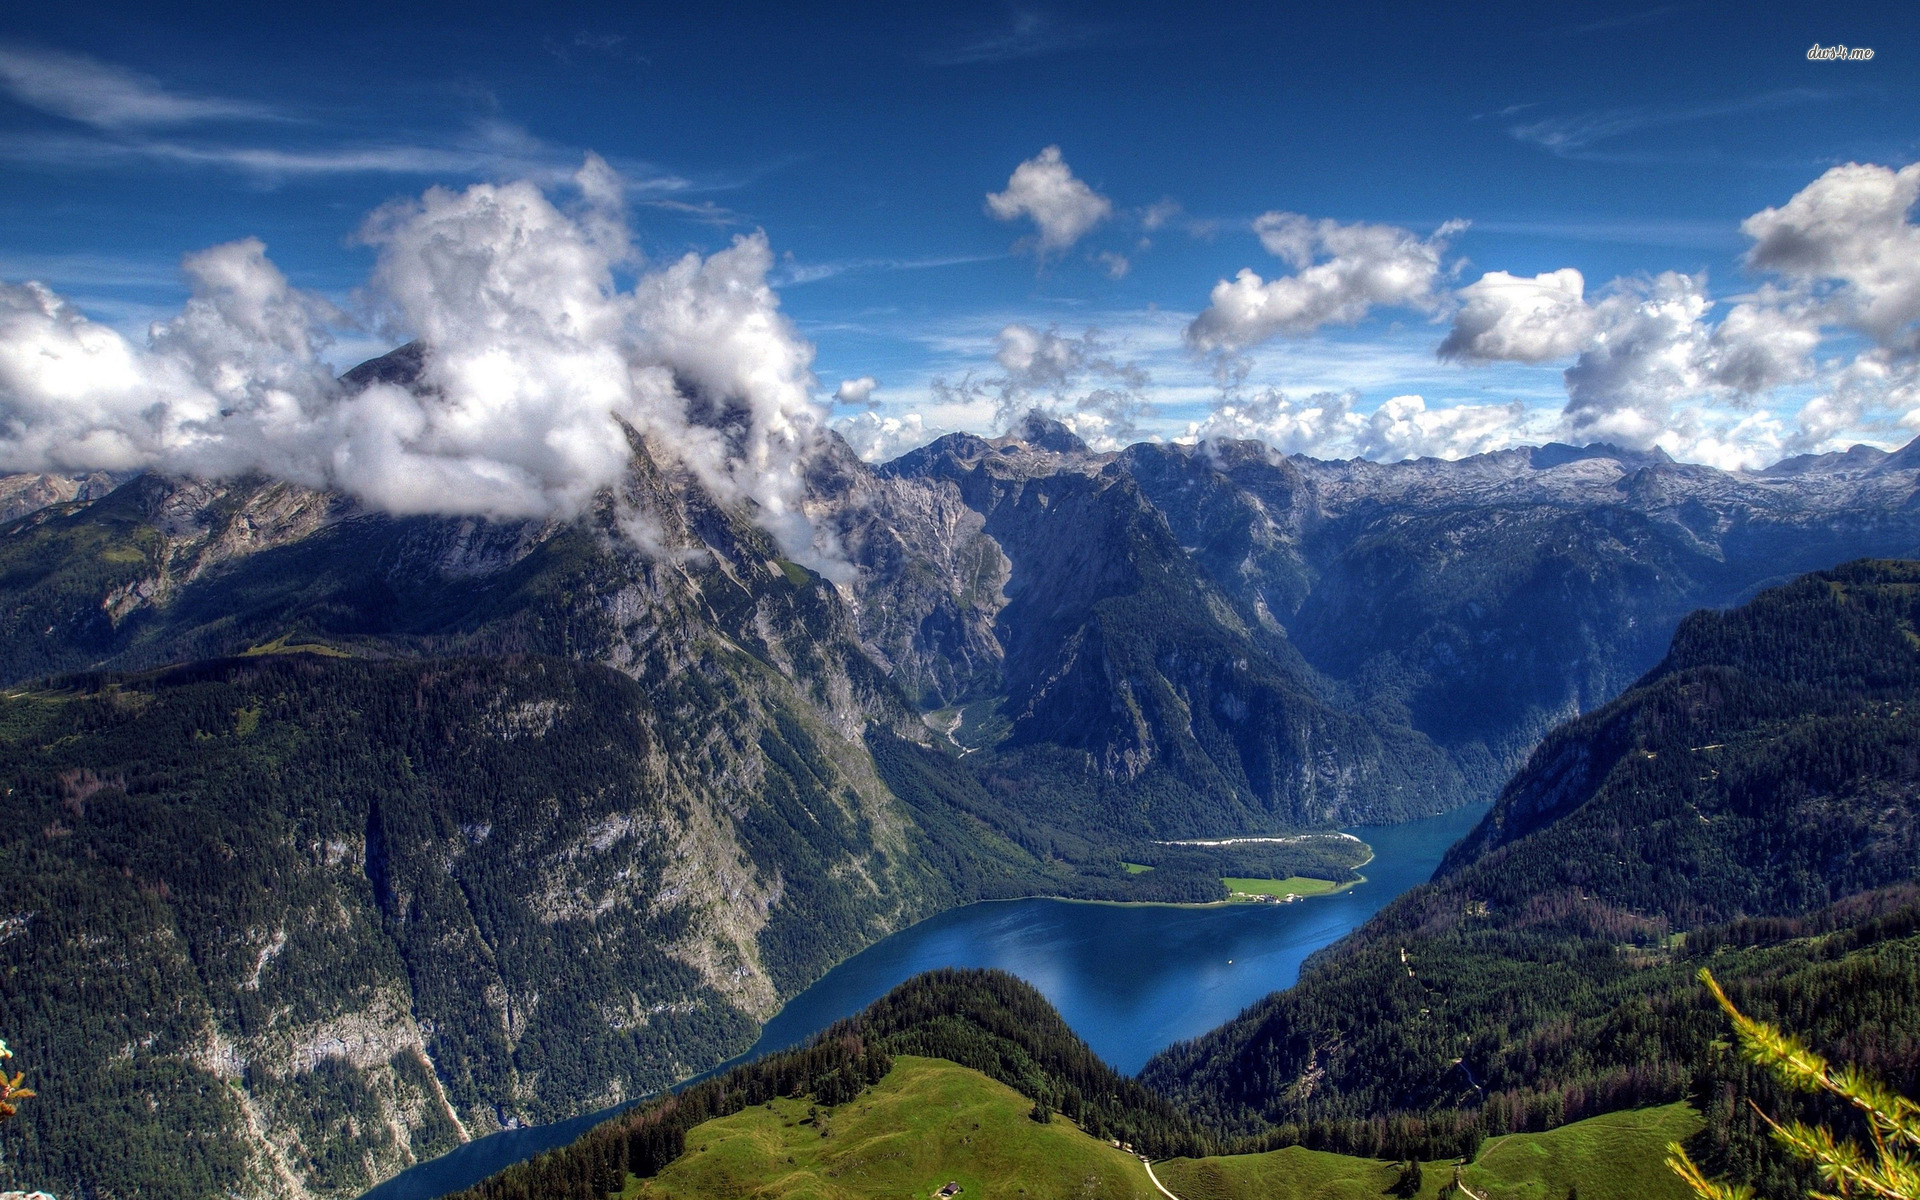 Königssee The Bavarian Alps, photos of the bavarian alps | Lake Konigsee, Bavarian Alps ...